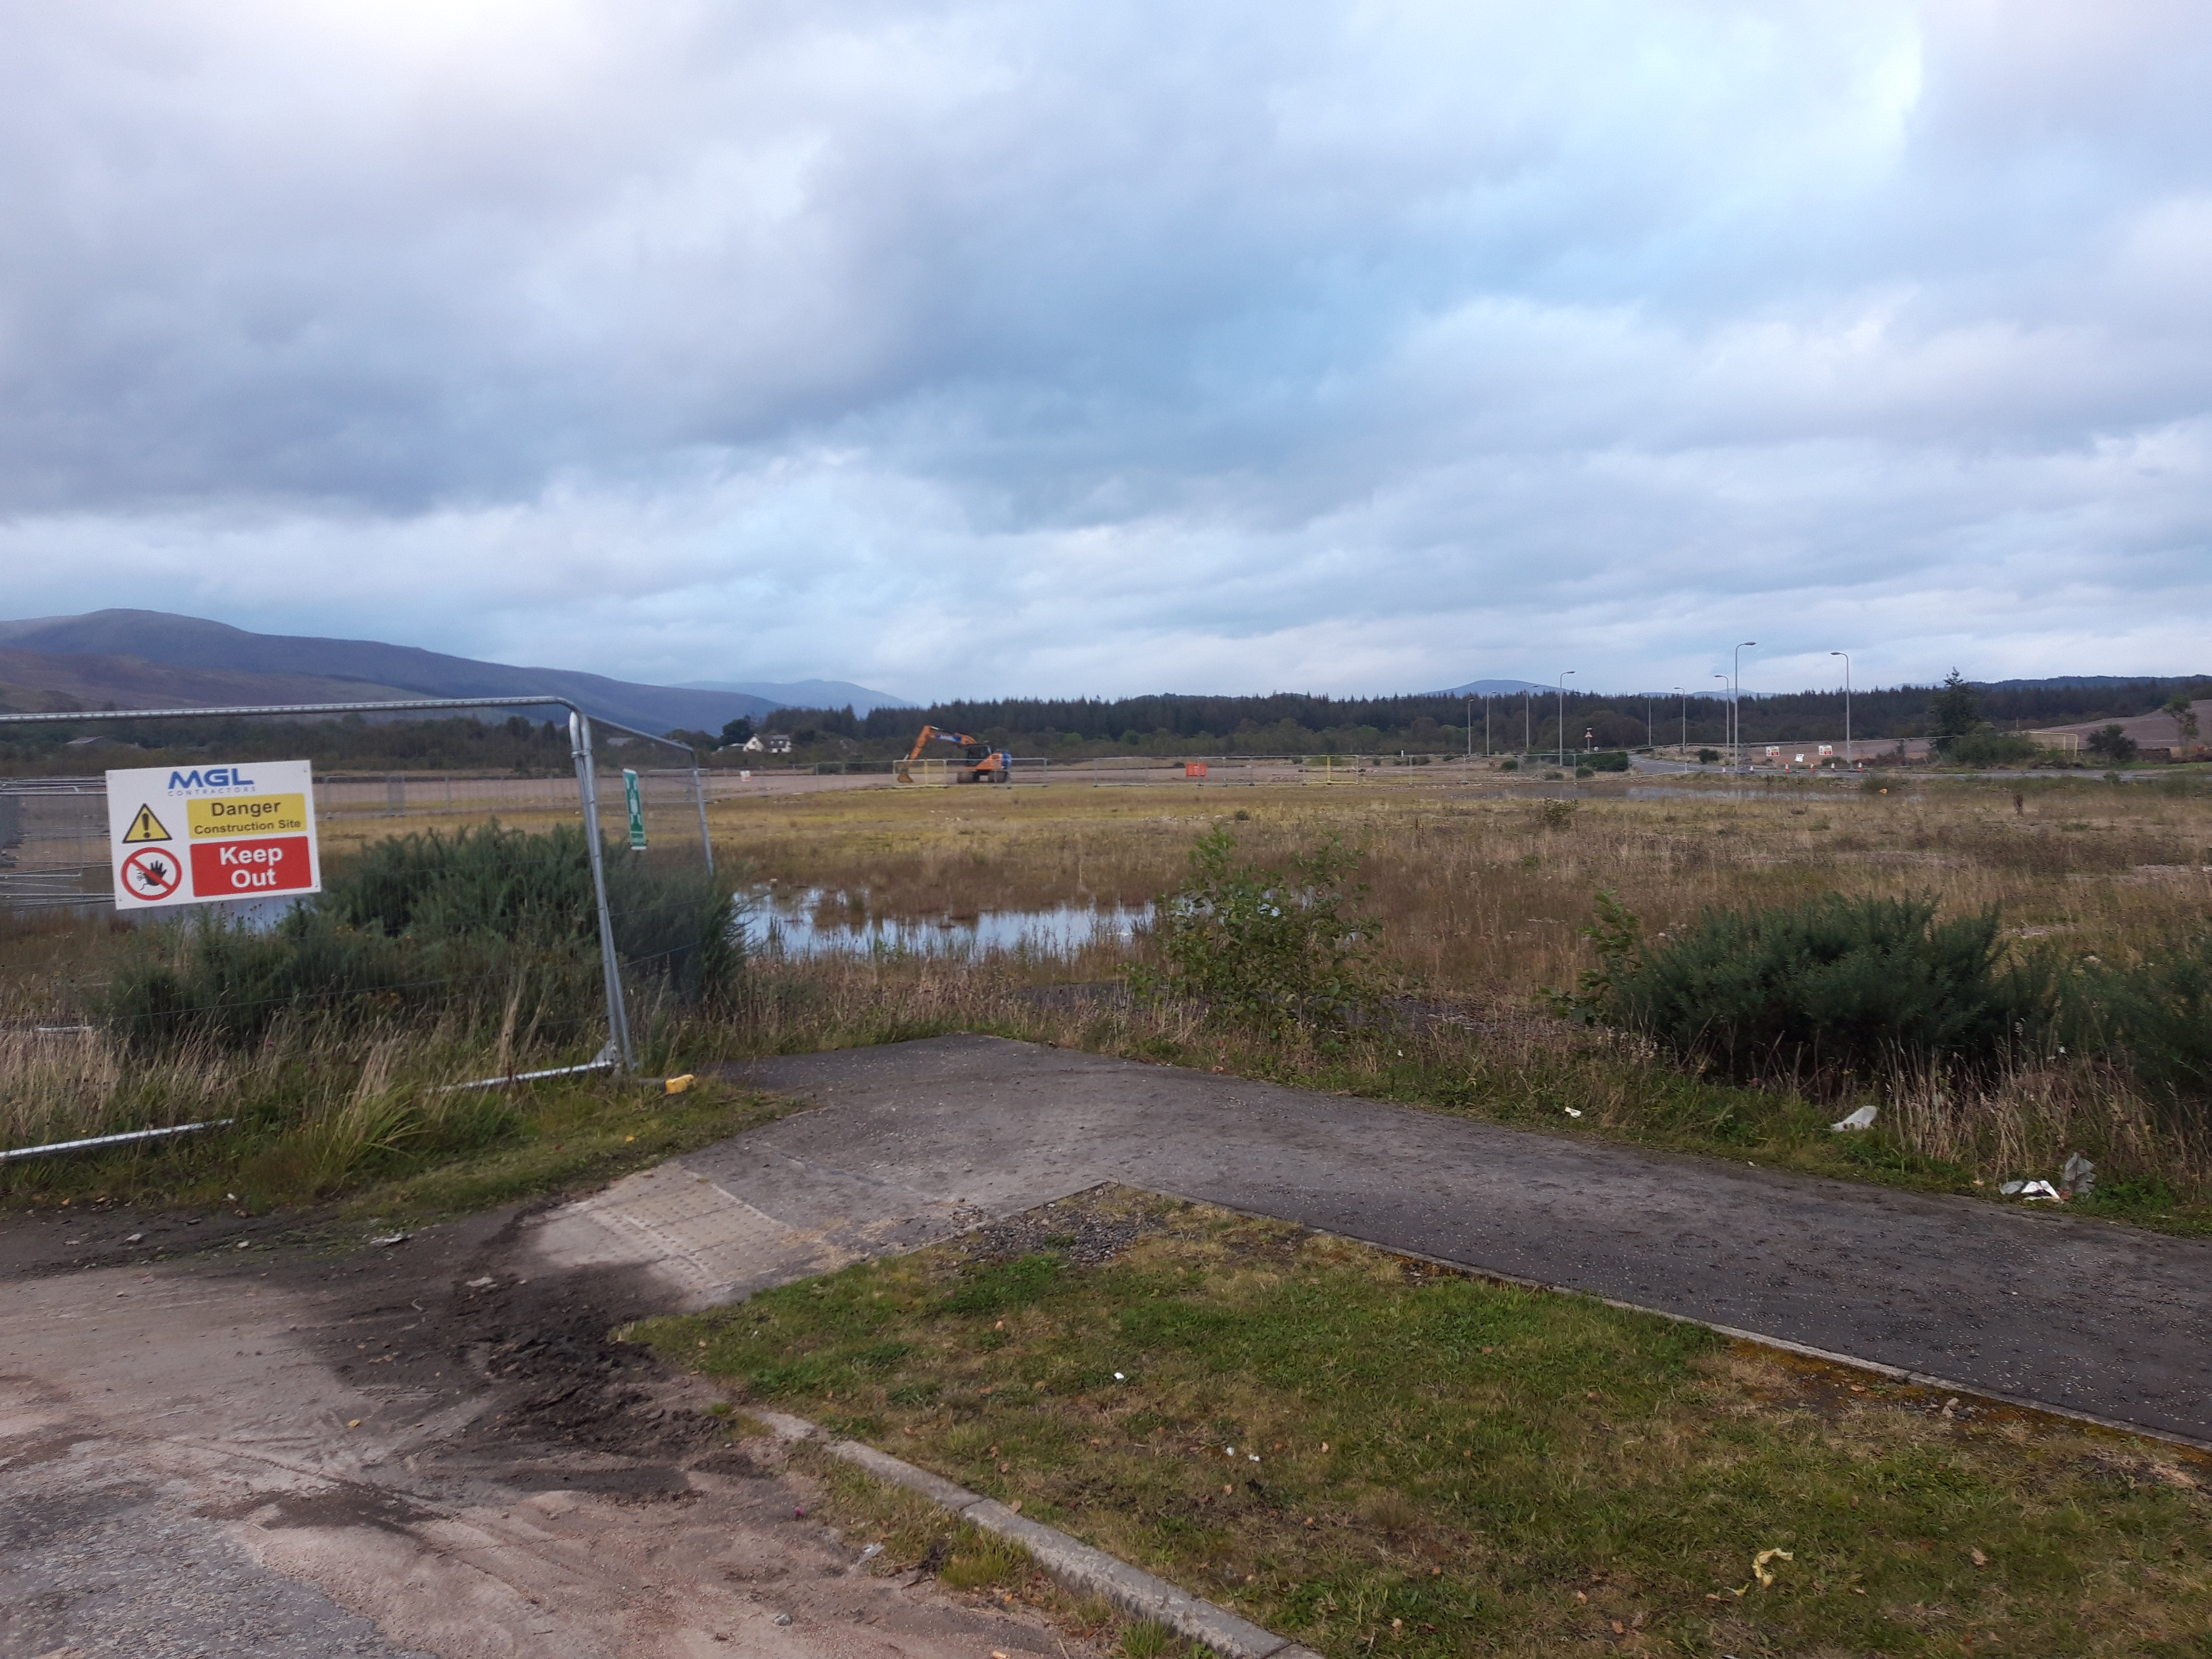 The site of the new Belford hospital where the helipad would be built